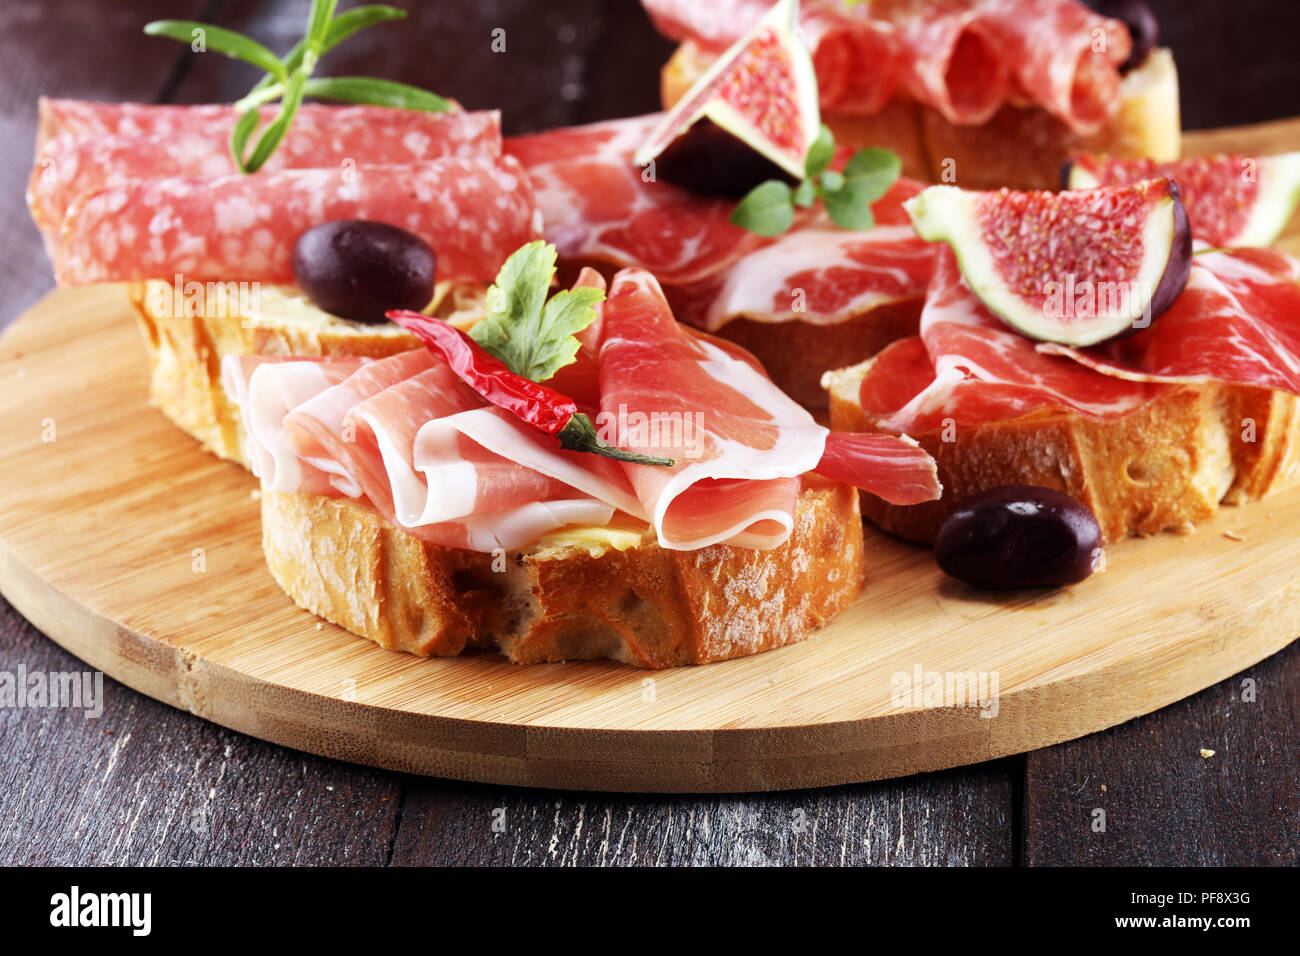 Sandwich with prosciutto or salami or crudo. Antipasti gourmet bruschetta snack - Stock Image